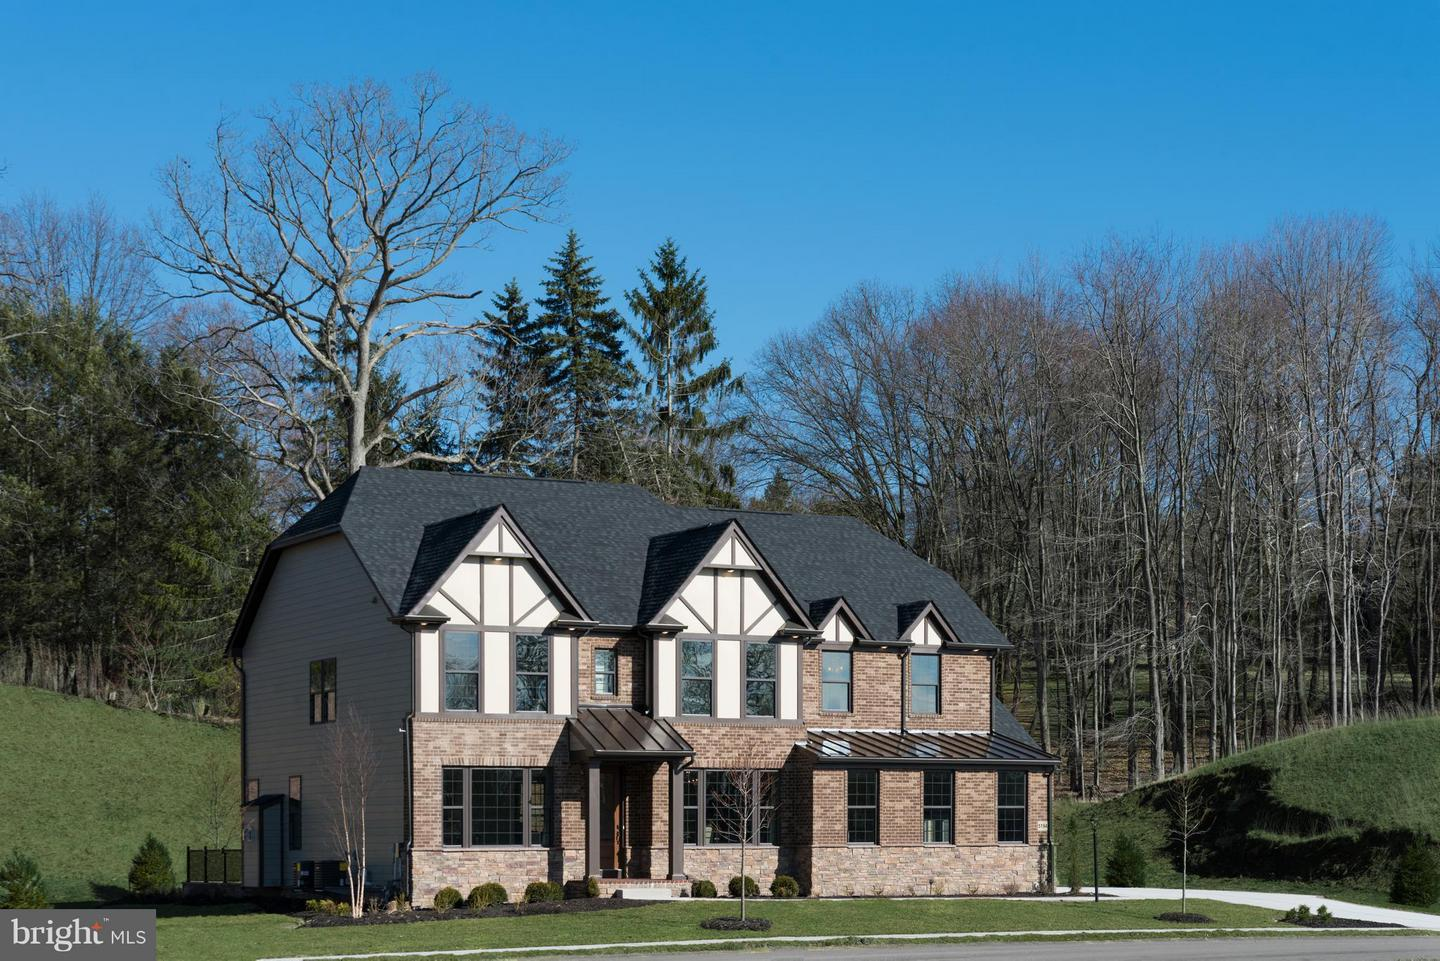 Single Family Home for Sale at Delaney Chase Way Delaney Chase Way Centreville, Virginia 20120 United States